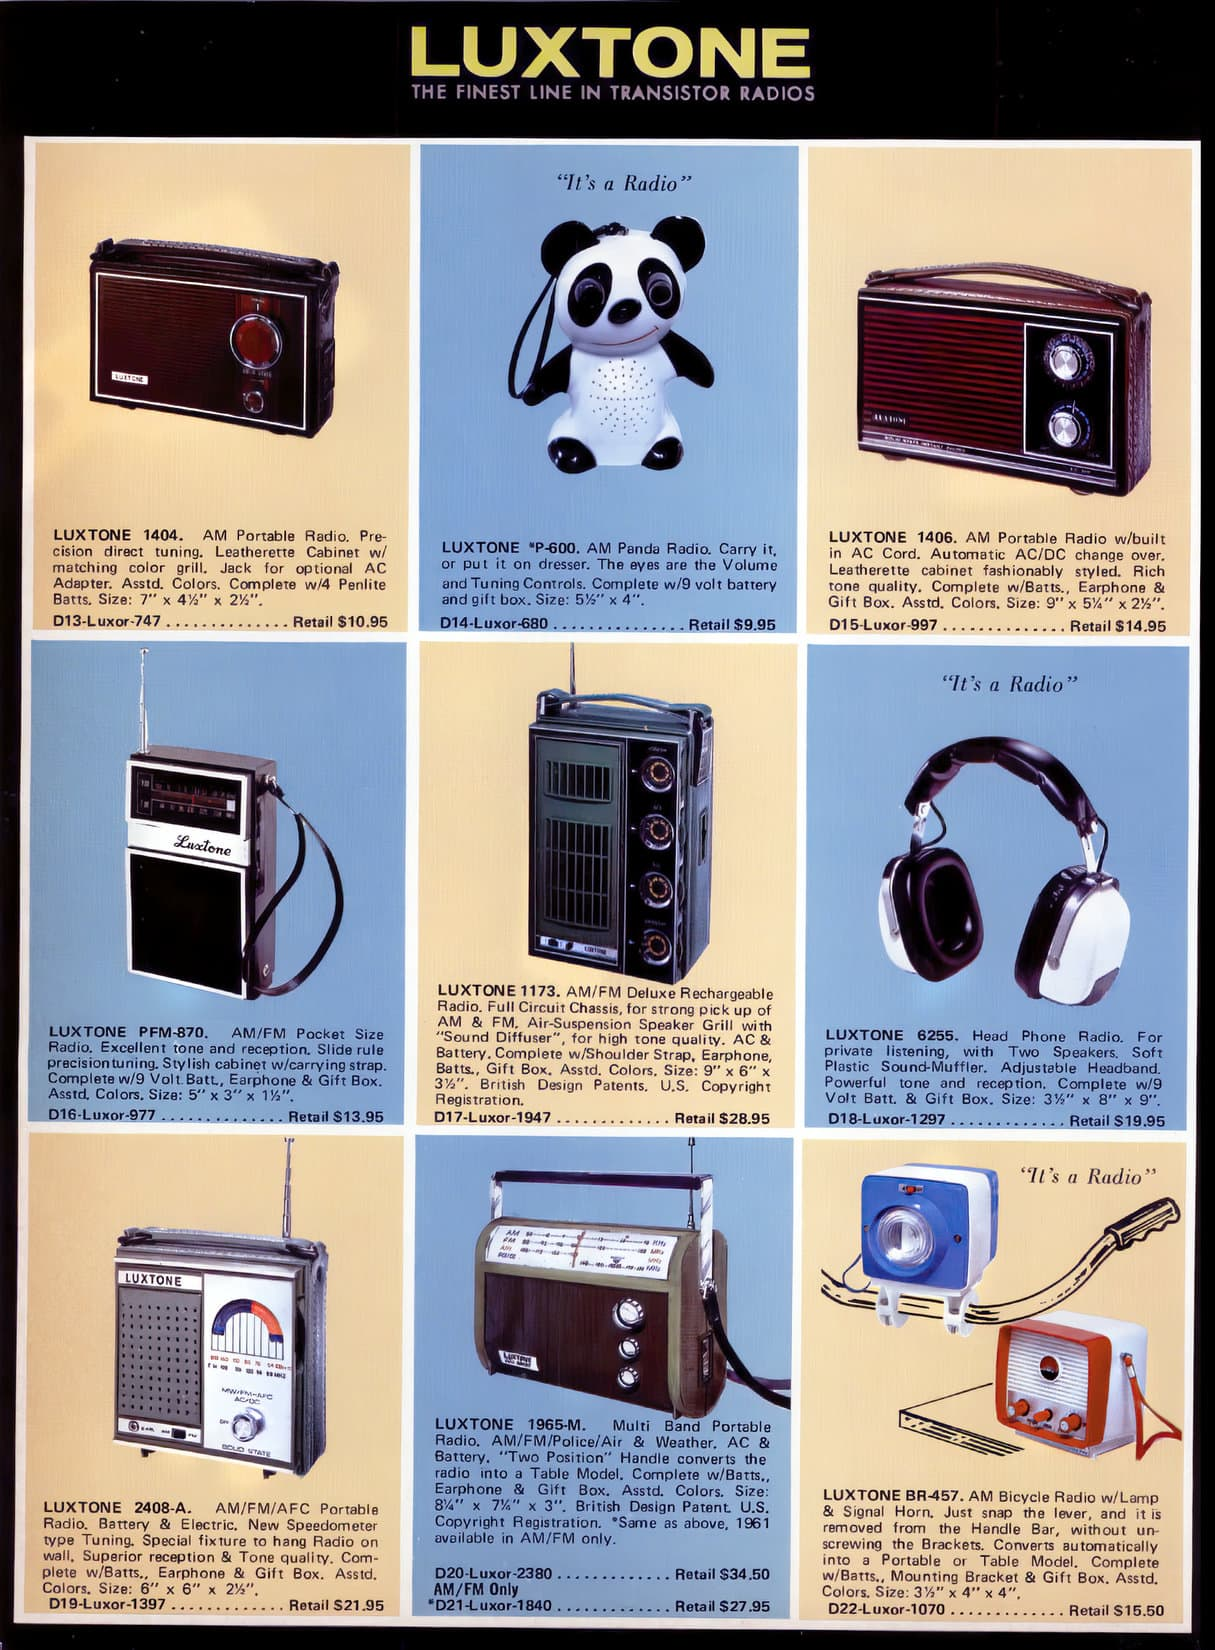 Vintage Luxtone portable radios from the 1960s